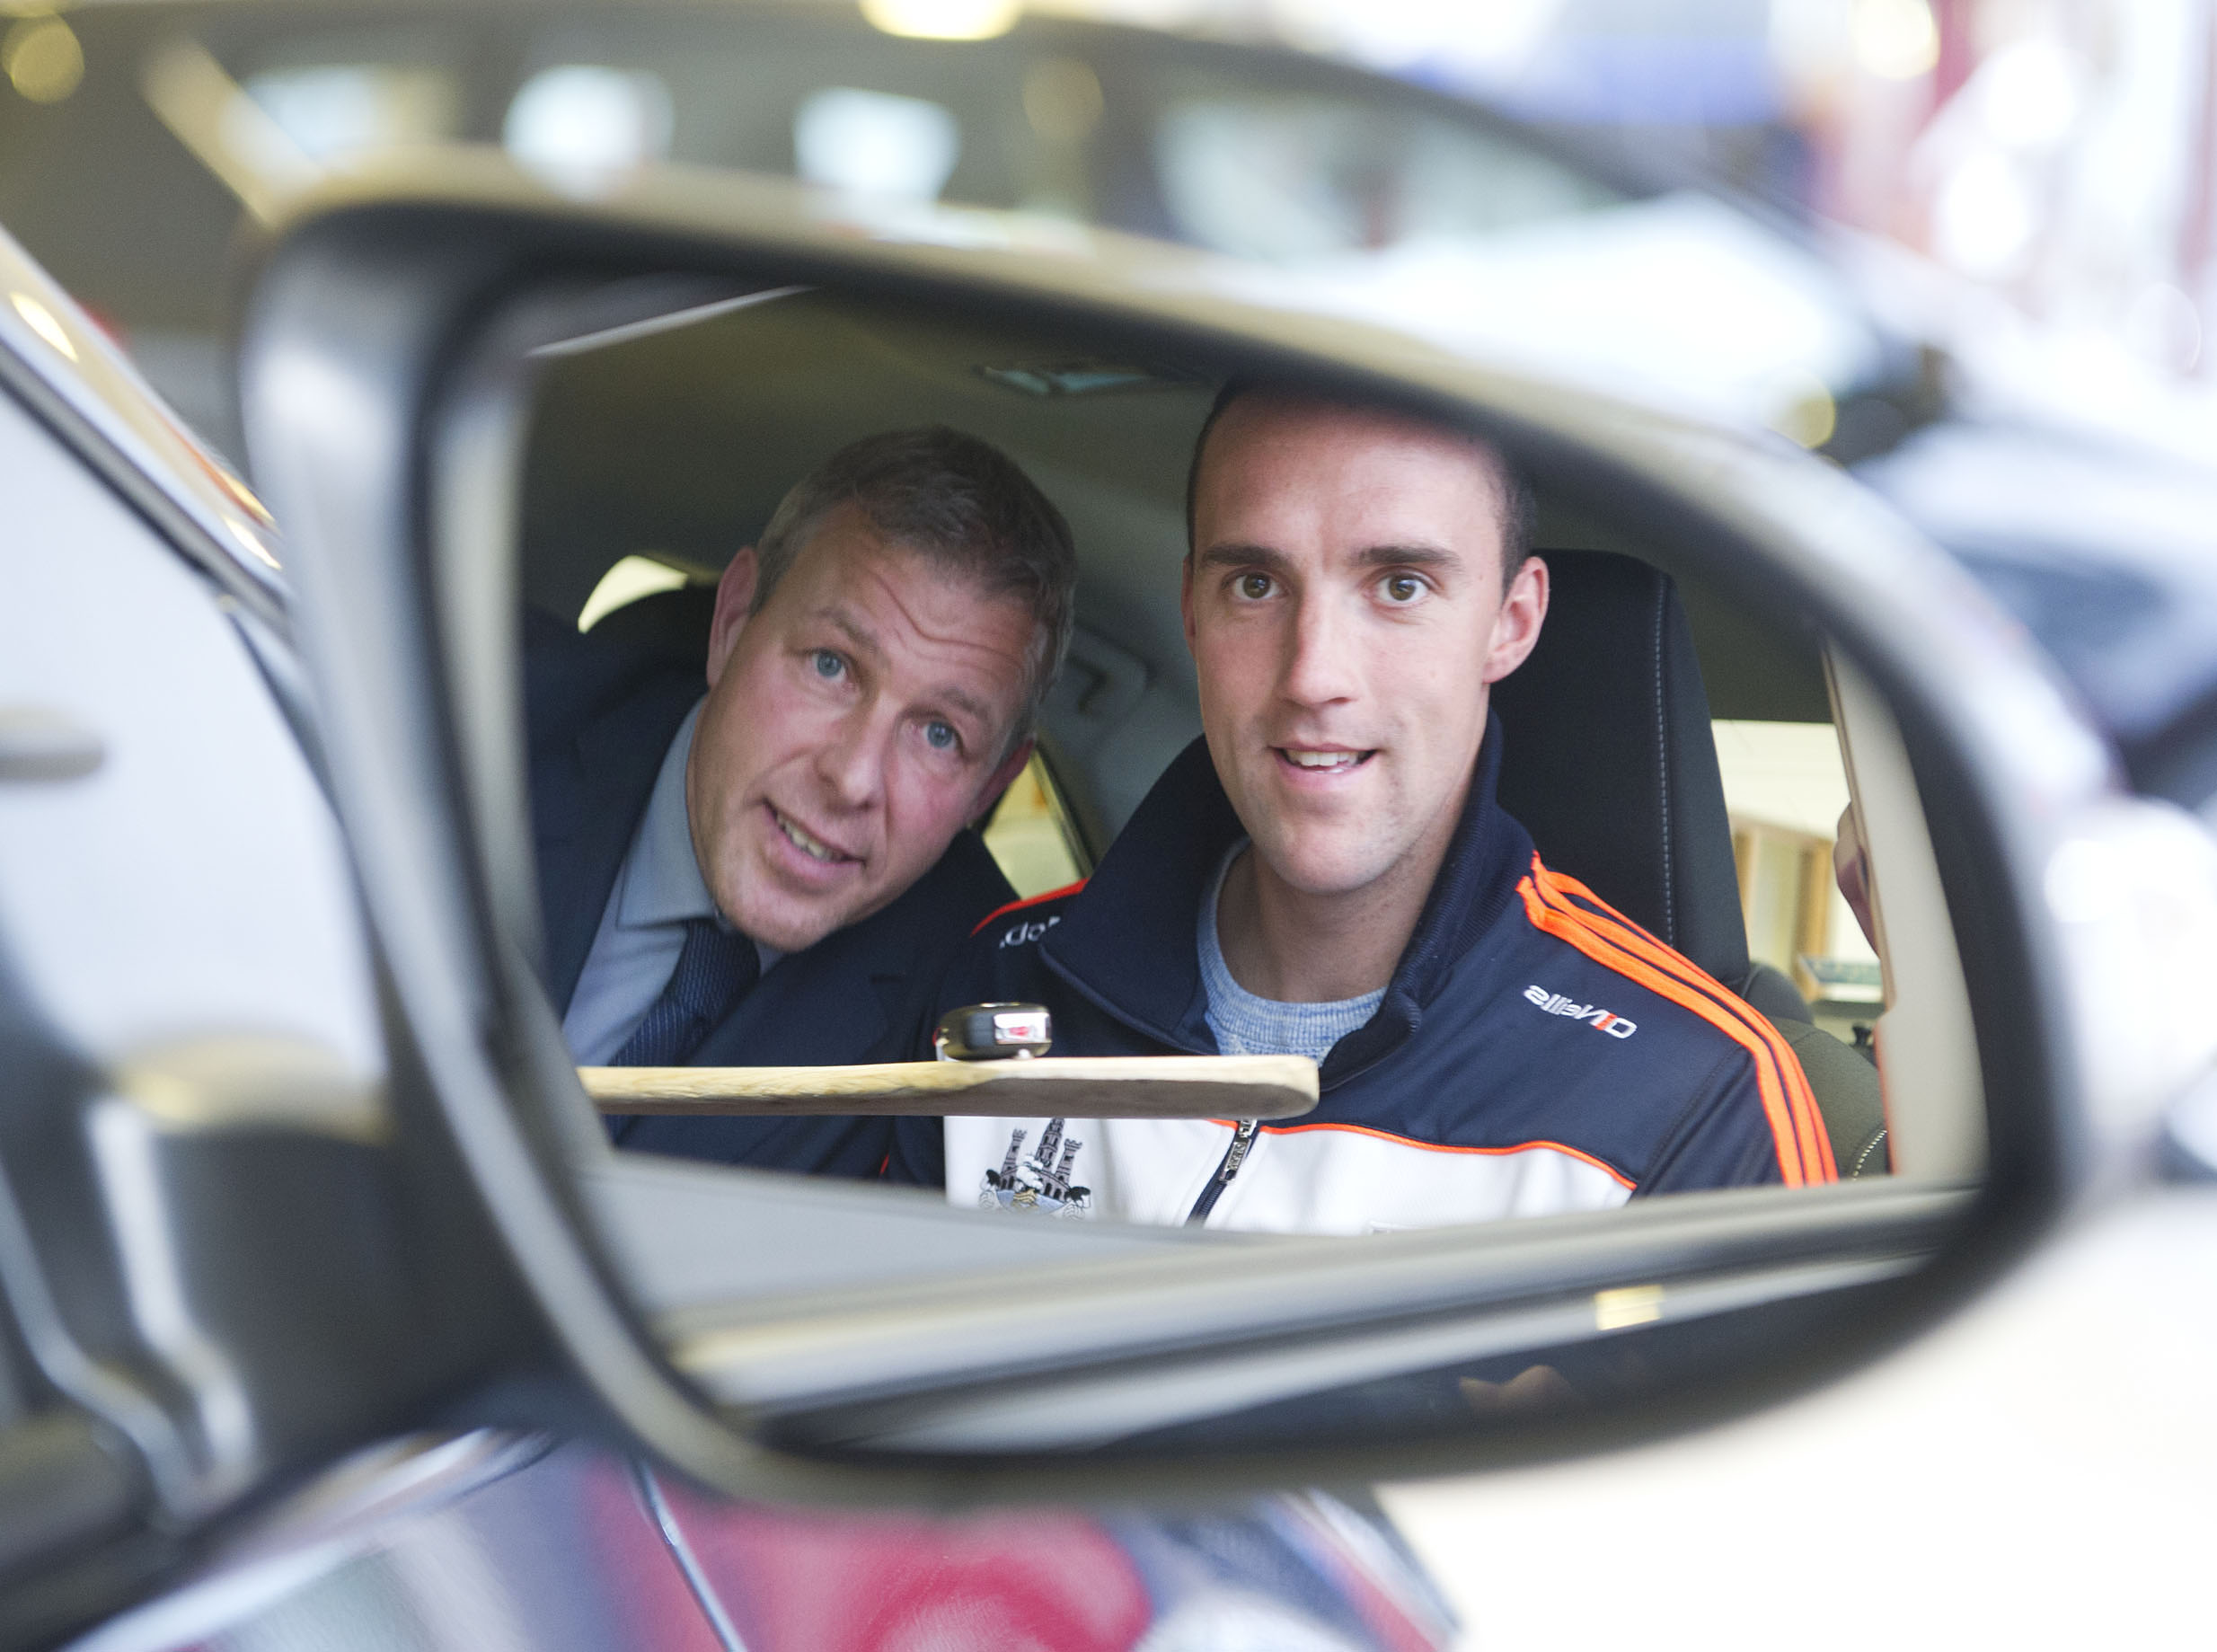 Cork Hurler receives new Toyota from Carrigaline dealership